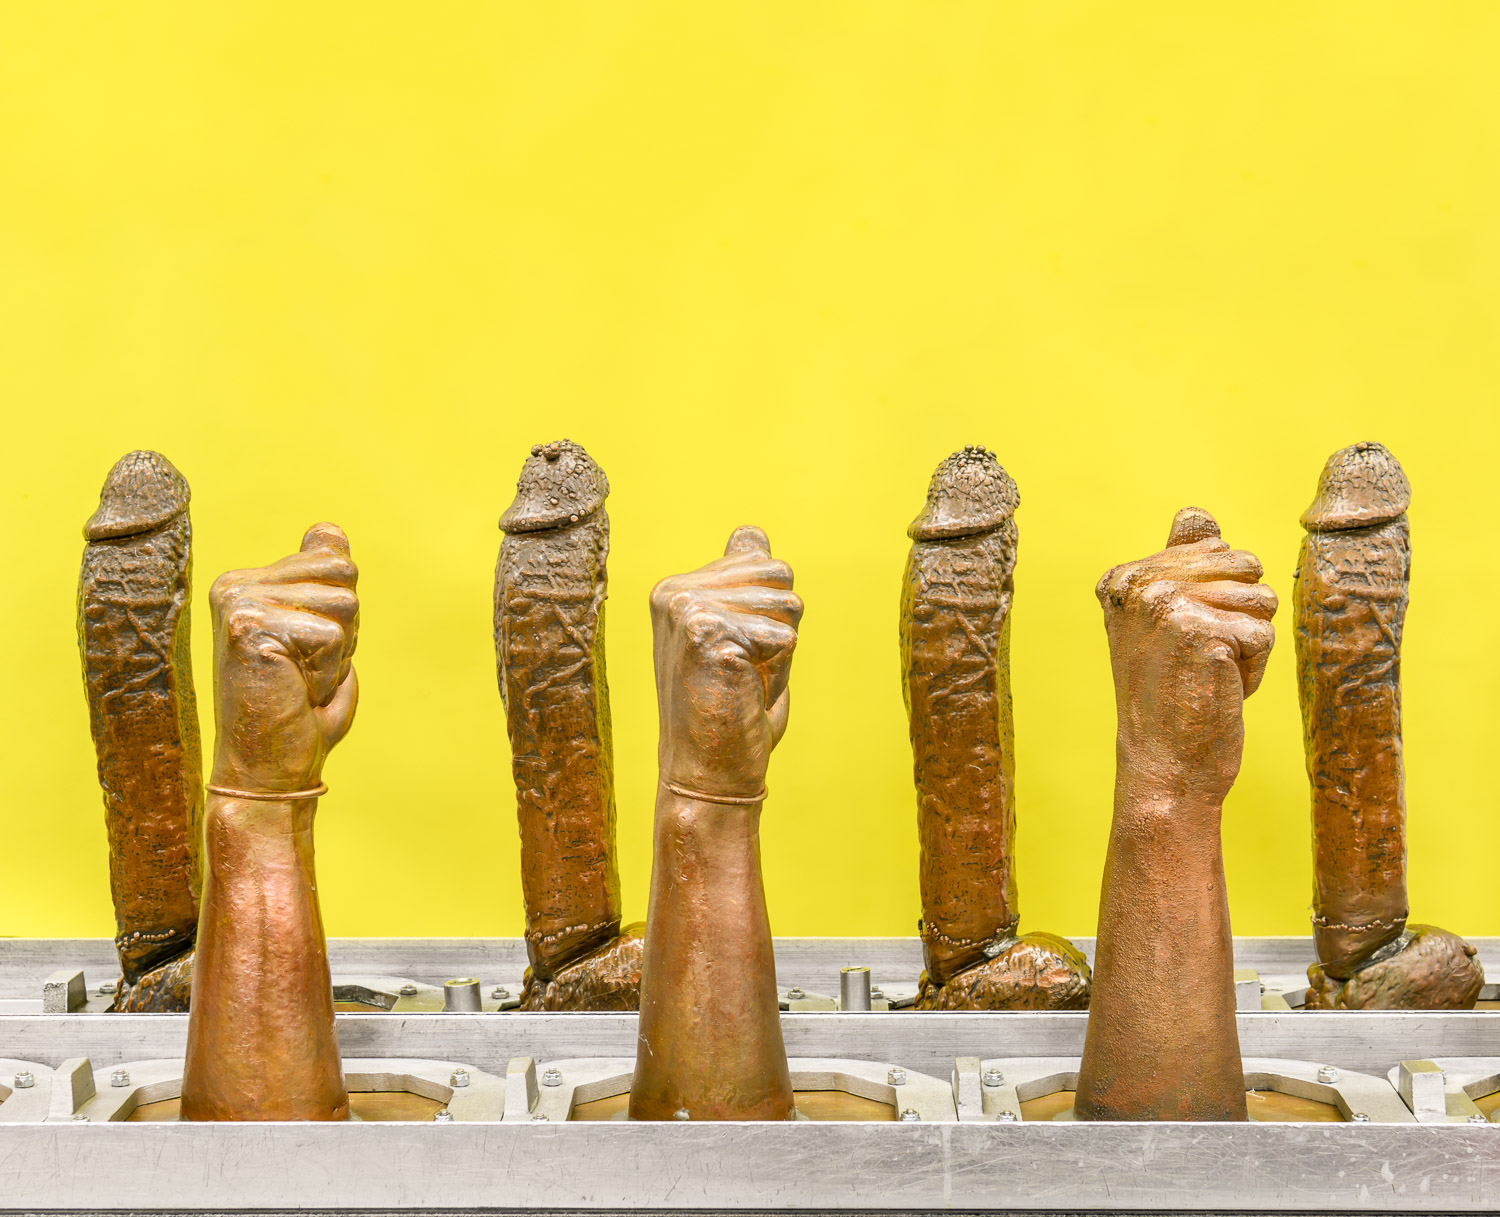 Moulds for rubber dildos on the factory floor of Doc Johnson, where 450 employees produce 75,000 sex toys per week.